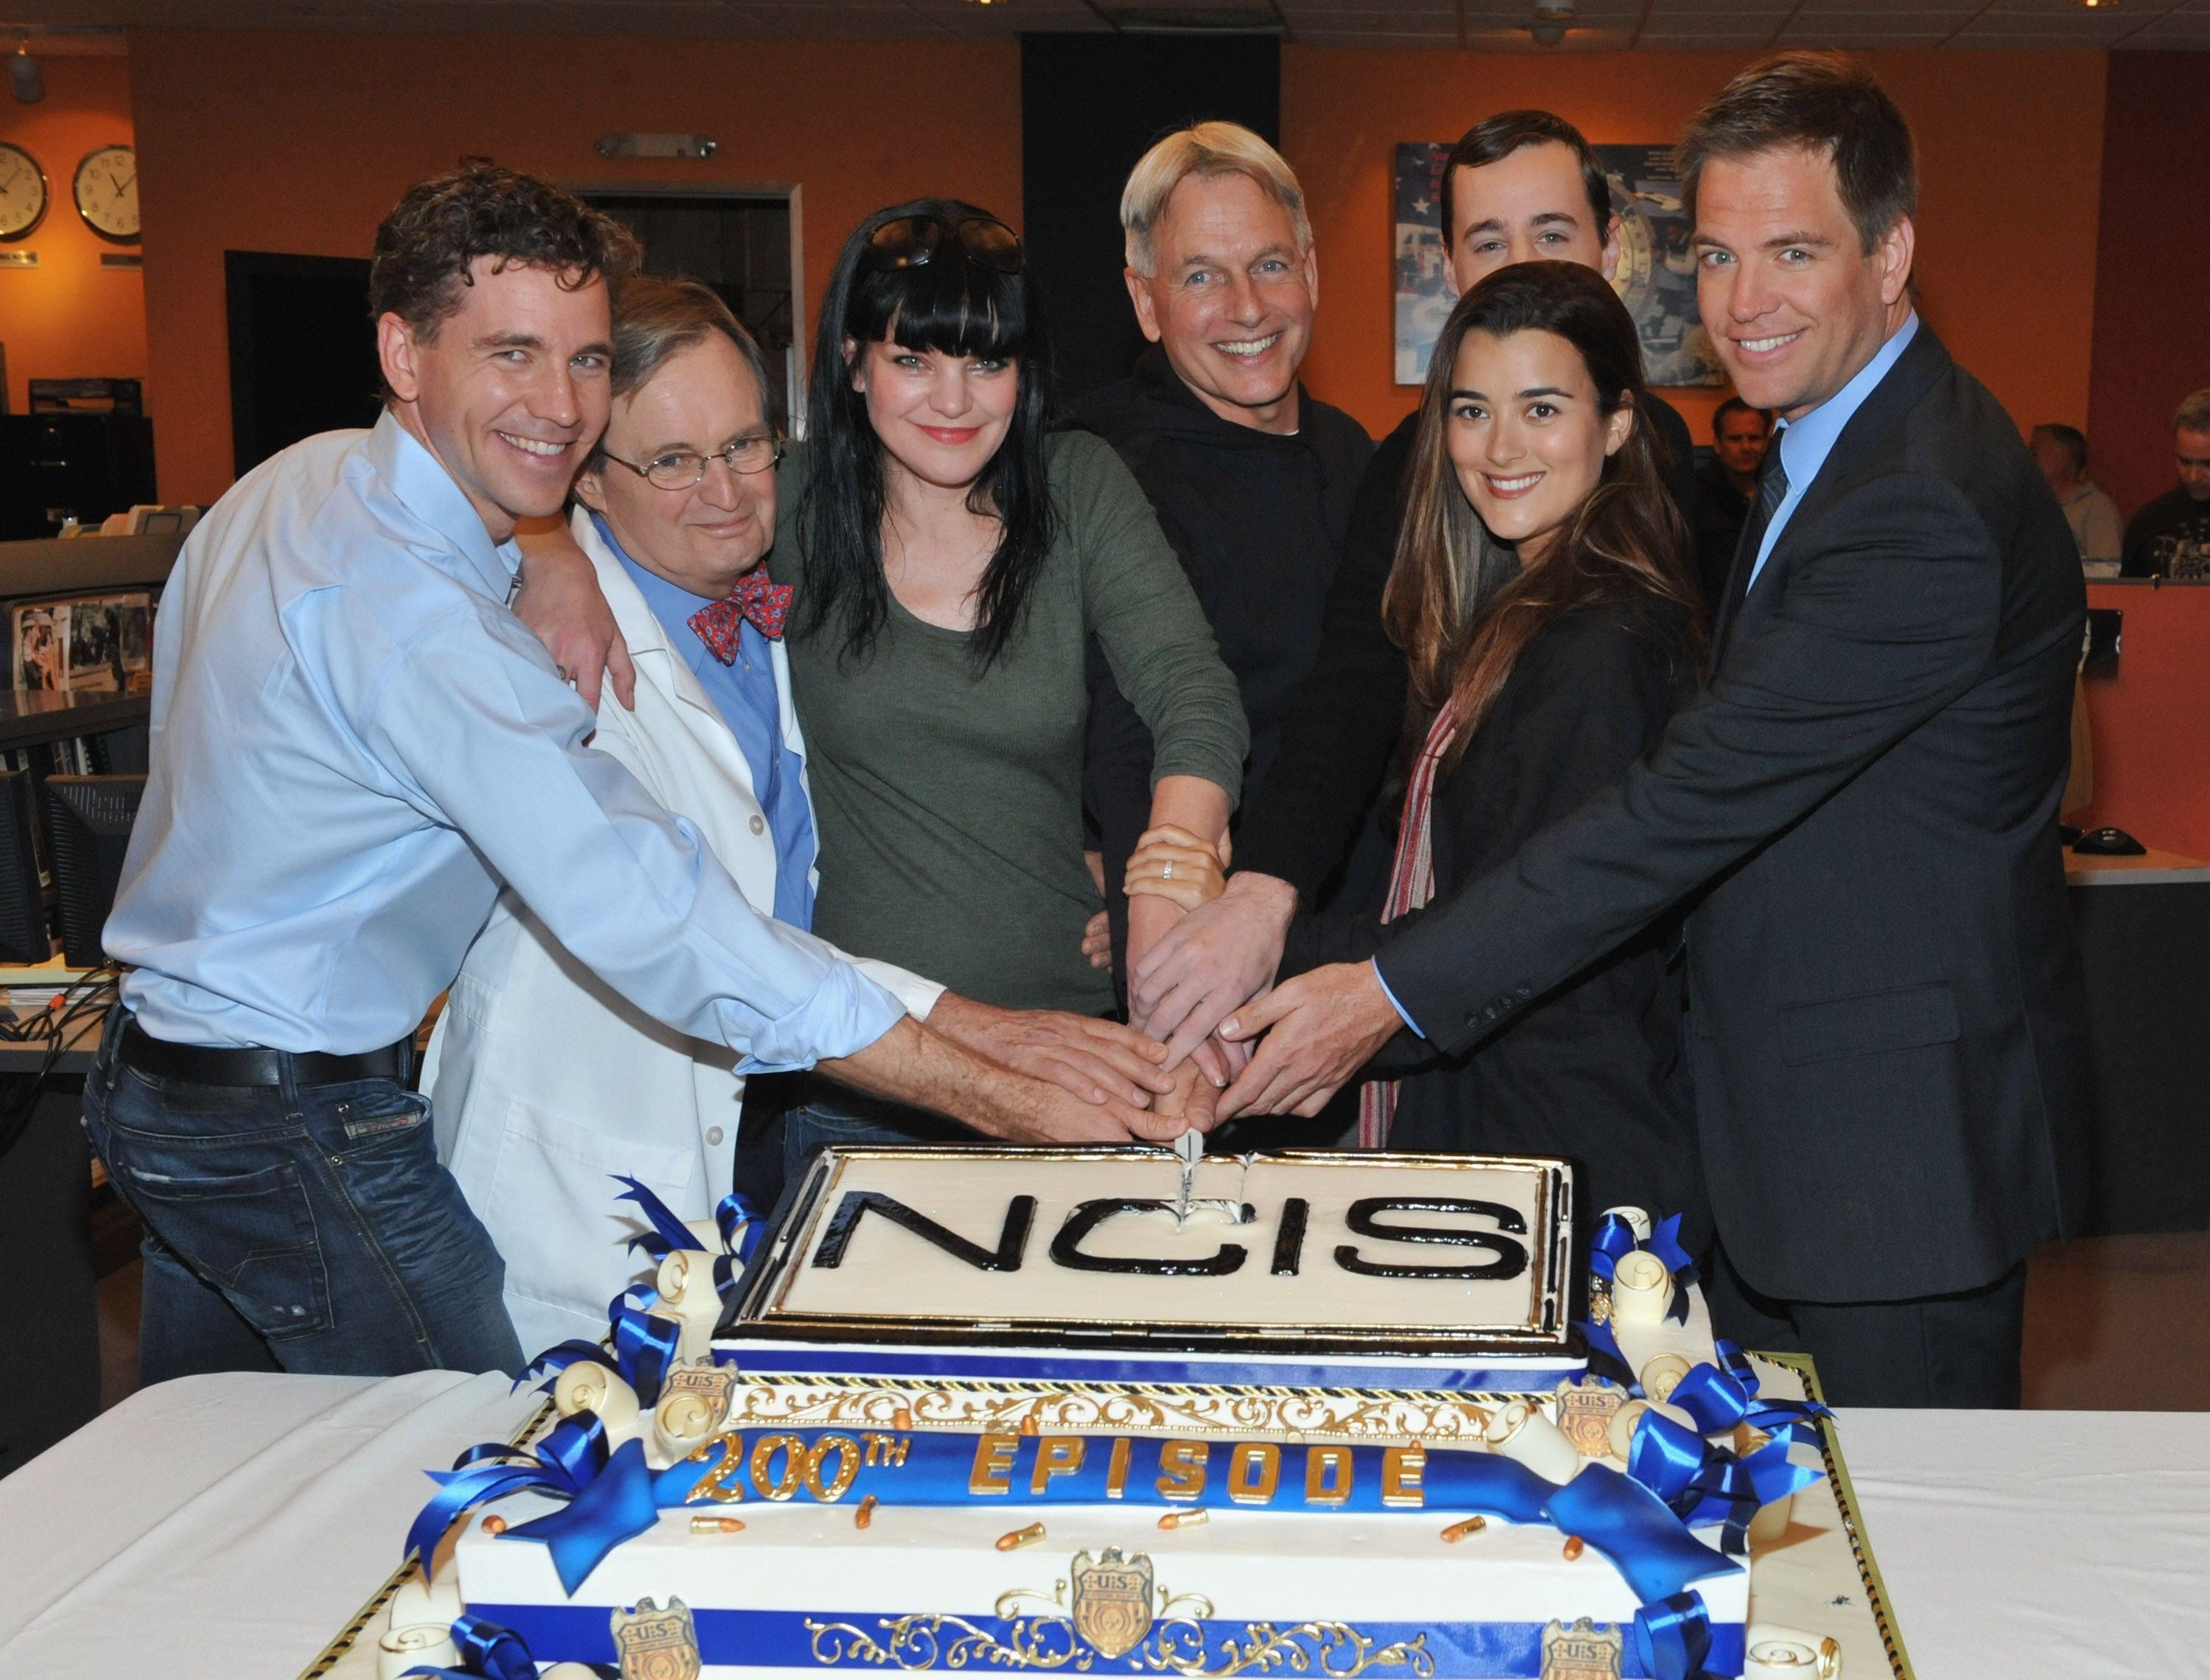 The cast members of NCIS / Getty Images